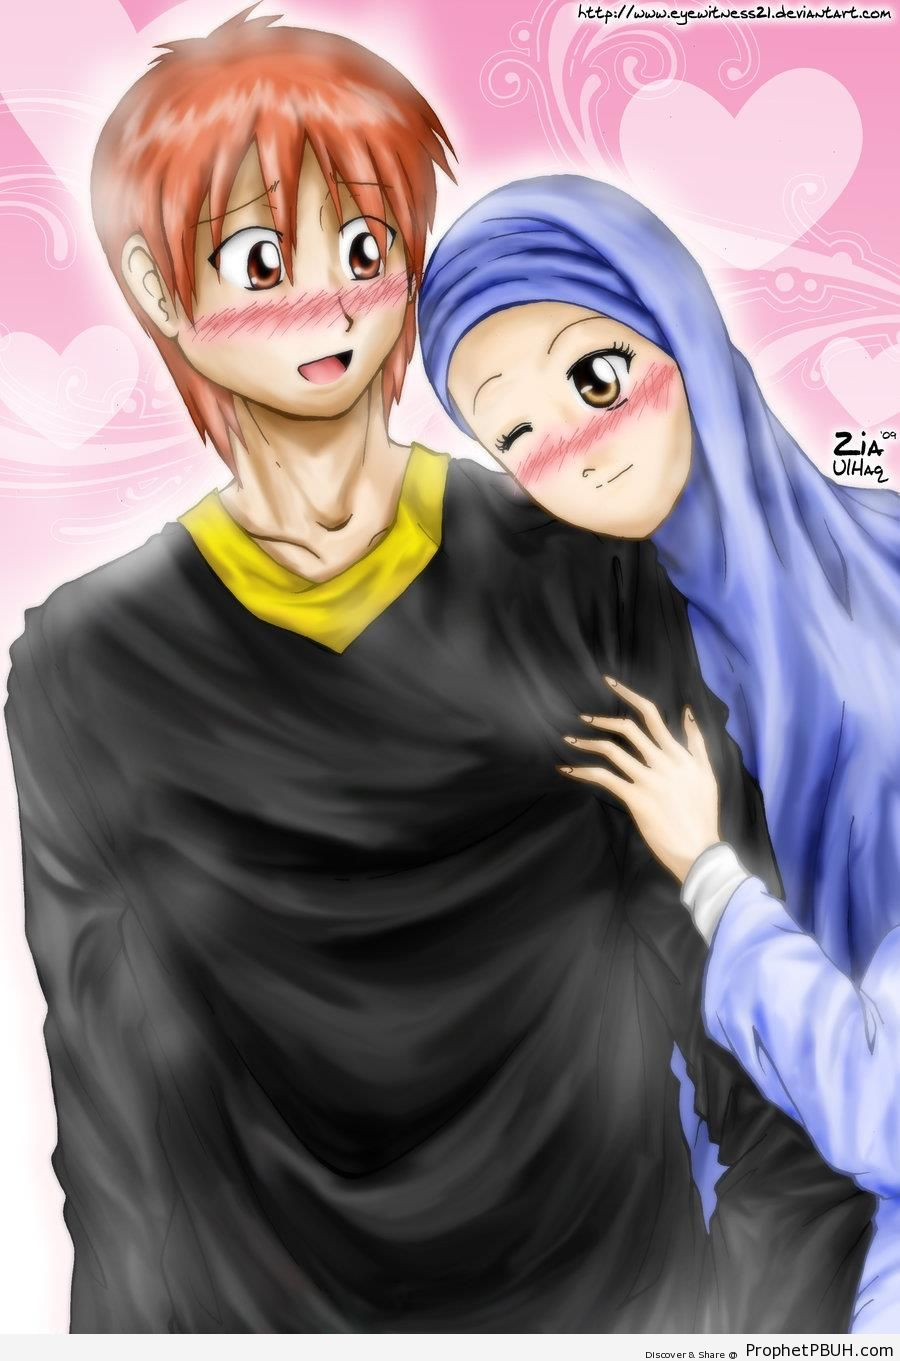 Shy Newly Wed Couple - Drawings